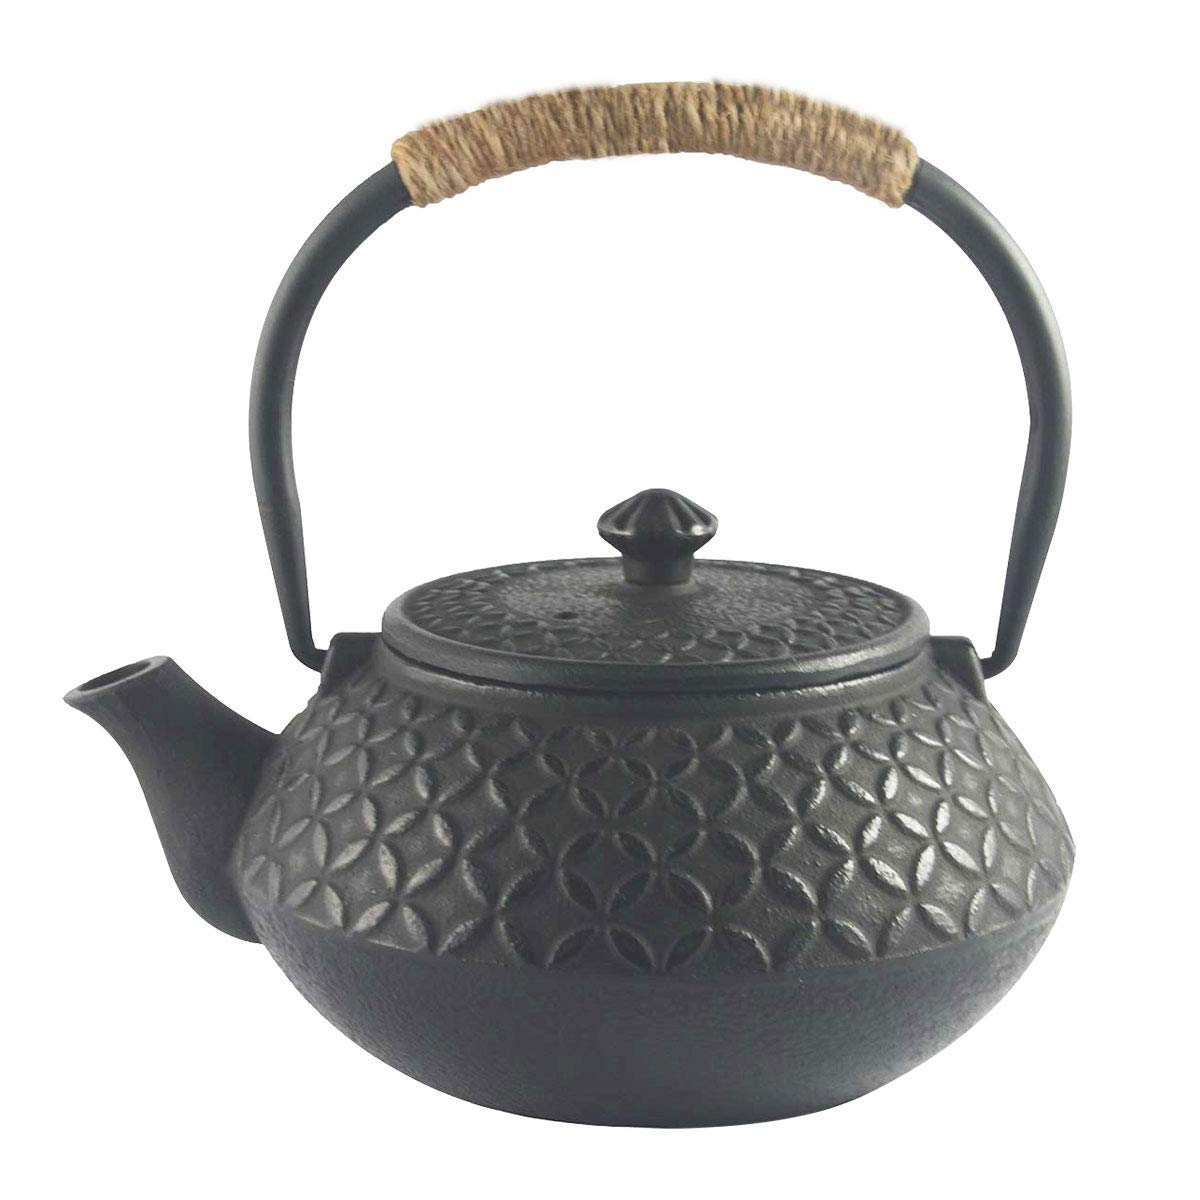 Hwagui - Best Chinese Cast Iron Teapot With Stainless Steel Tea Infuser For Loose Leaf Tea And Tea Bags, Black Tea Kettle 600ml/20oz